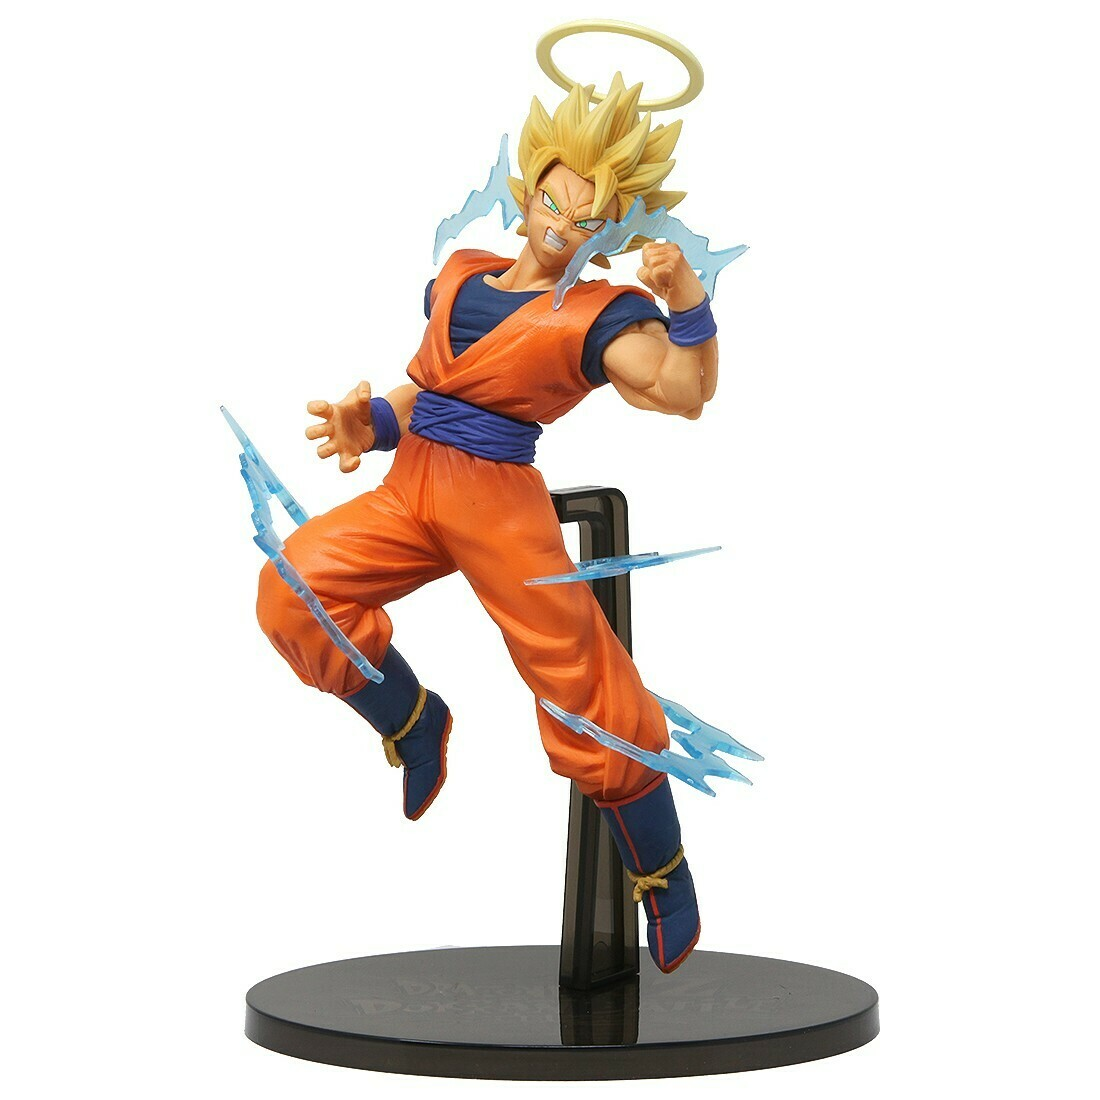 Figura Banpresto Goku Super Saiyajin Dokkan B Dragon Ball Z